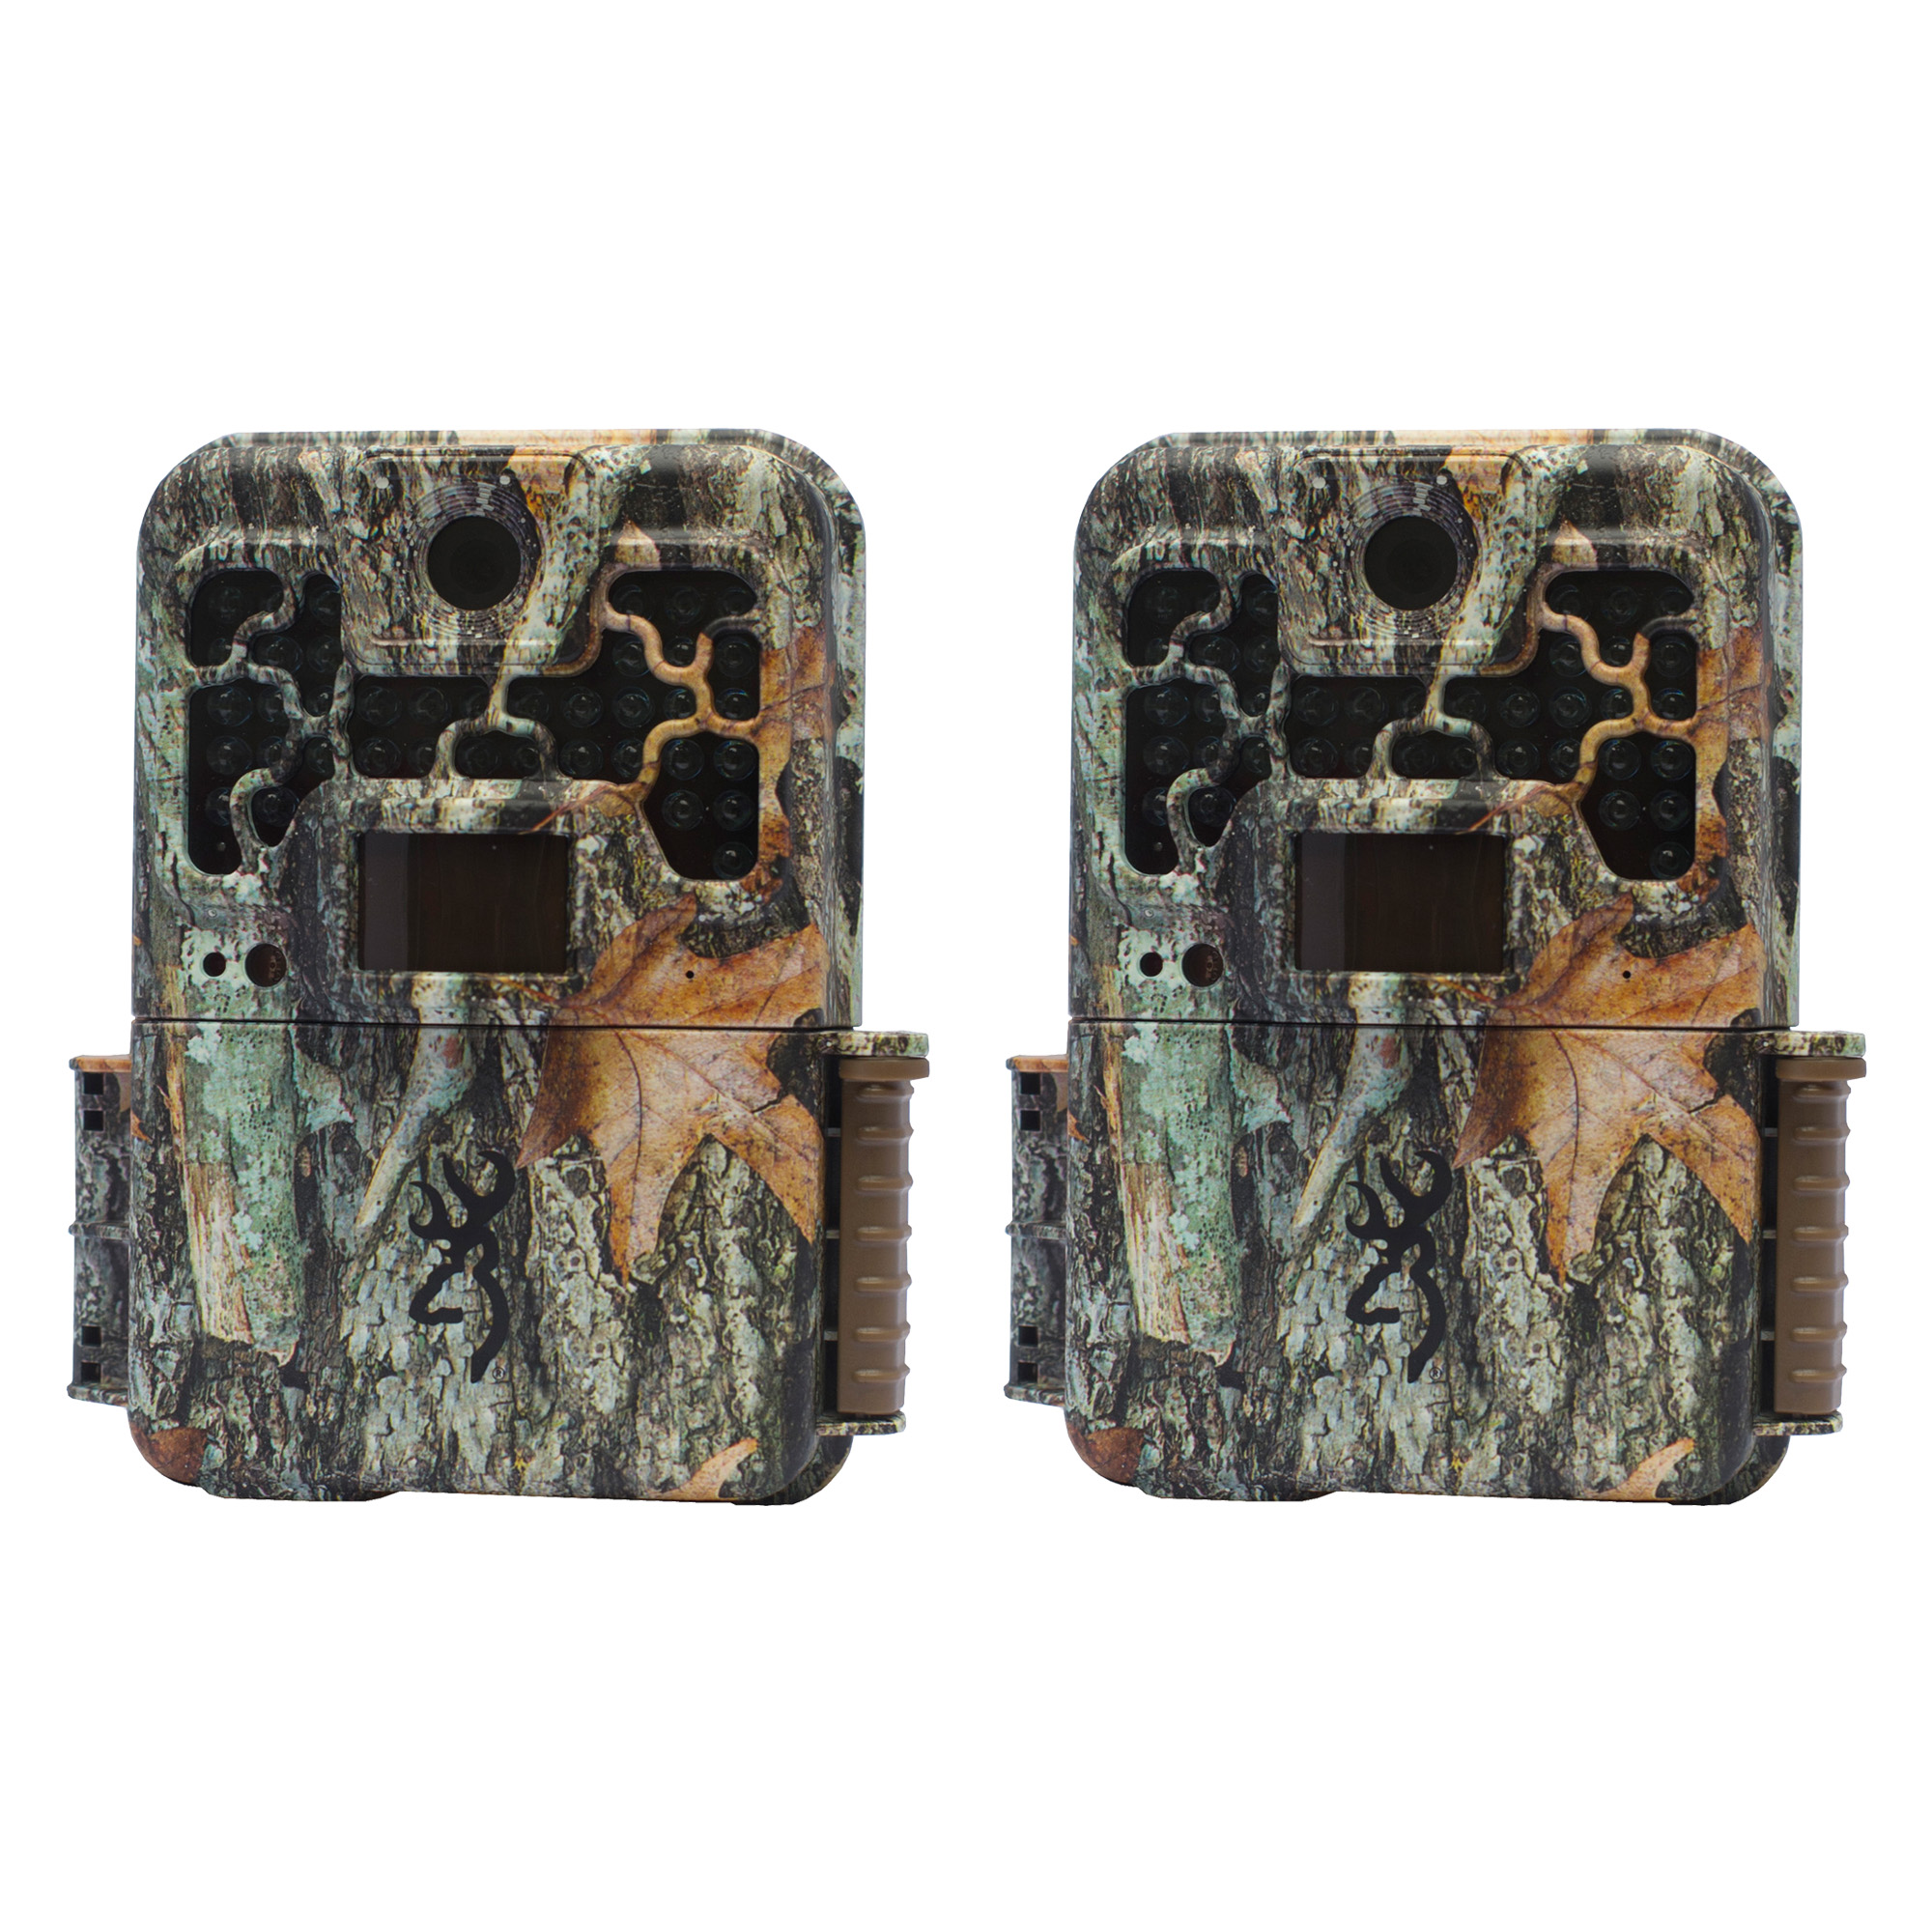 Browning Trail Cameras Recon Force FHD IR 10MP Game Camera, 2 Pack | BTC7FHD-P by Browning Trail Cameras